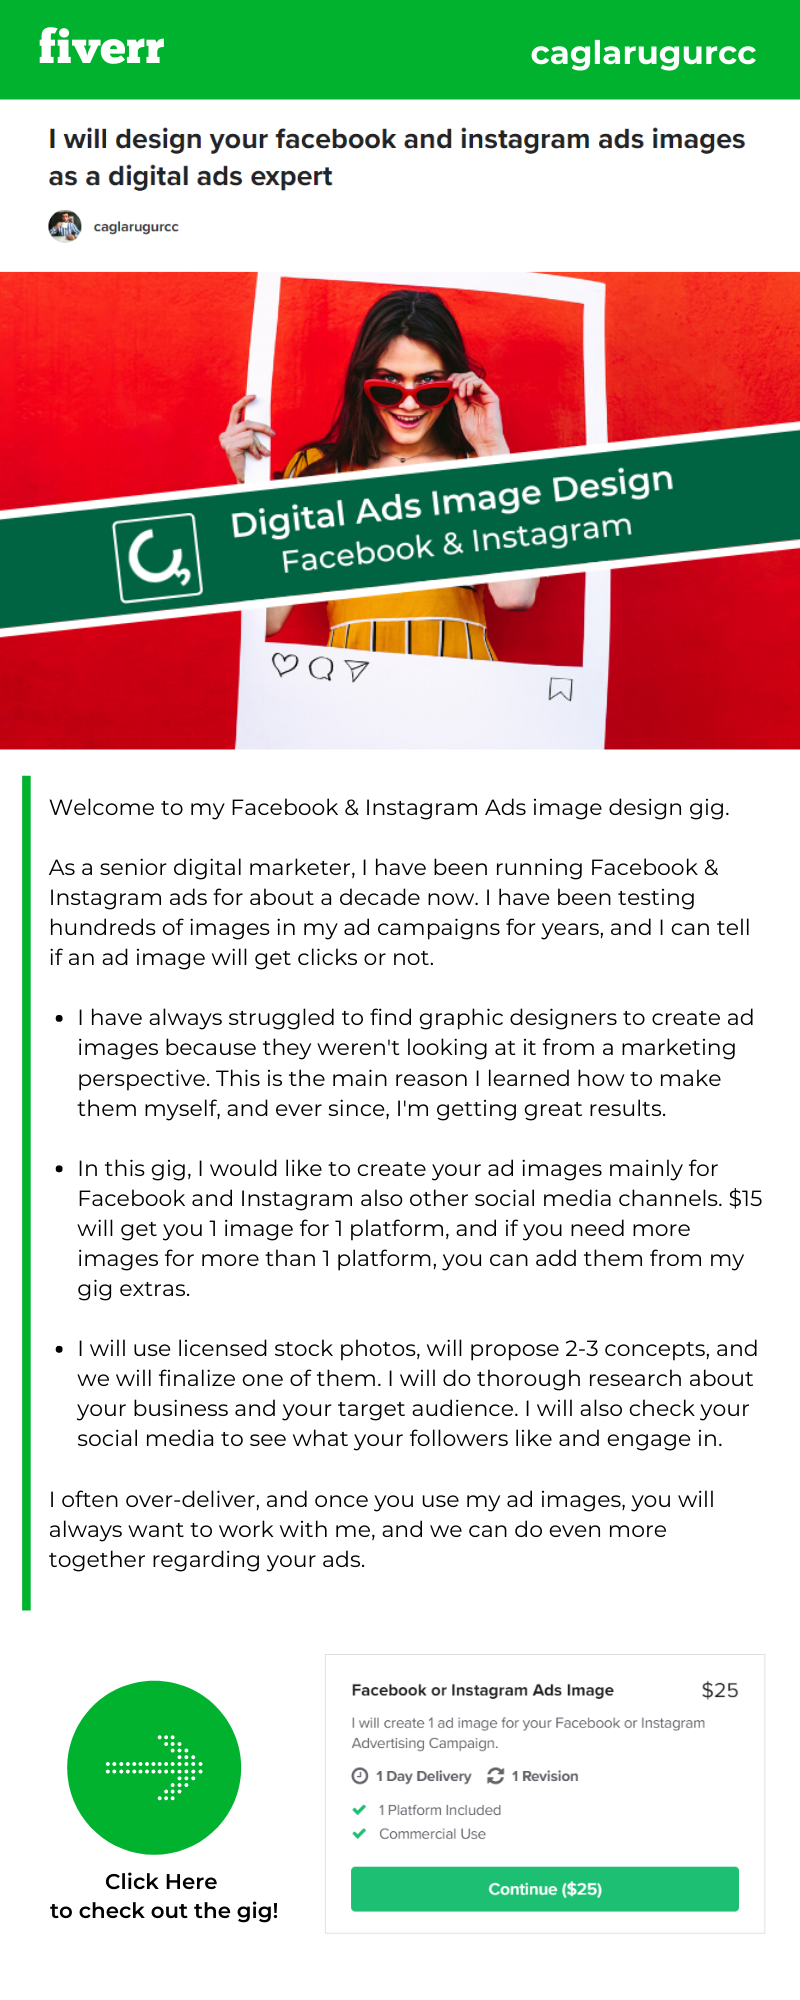 I will design your facebook and instagram ads images as a digital ads expert